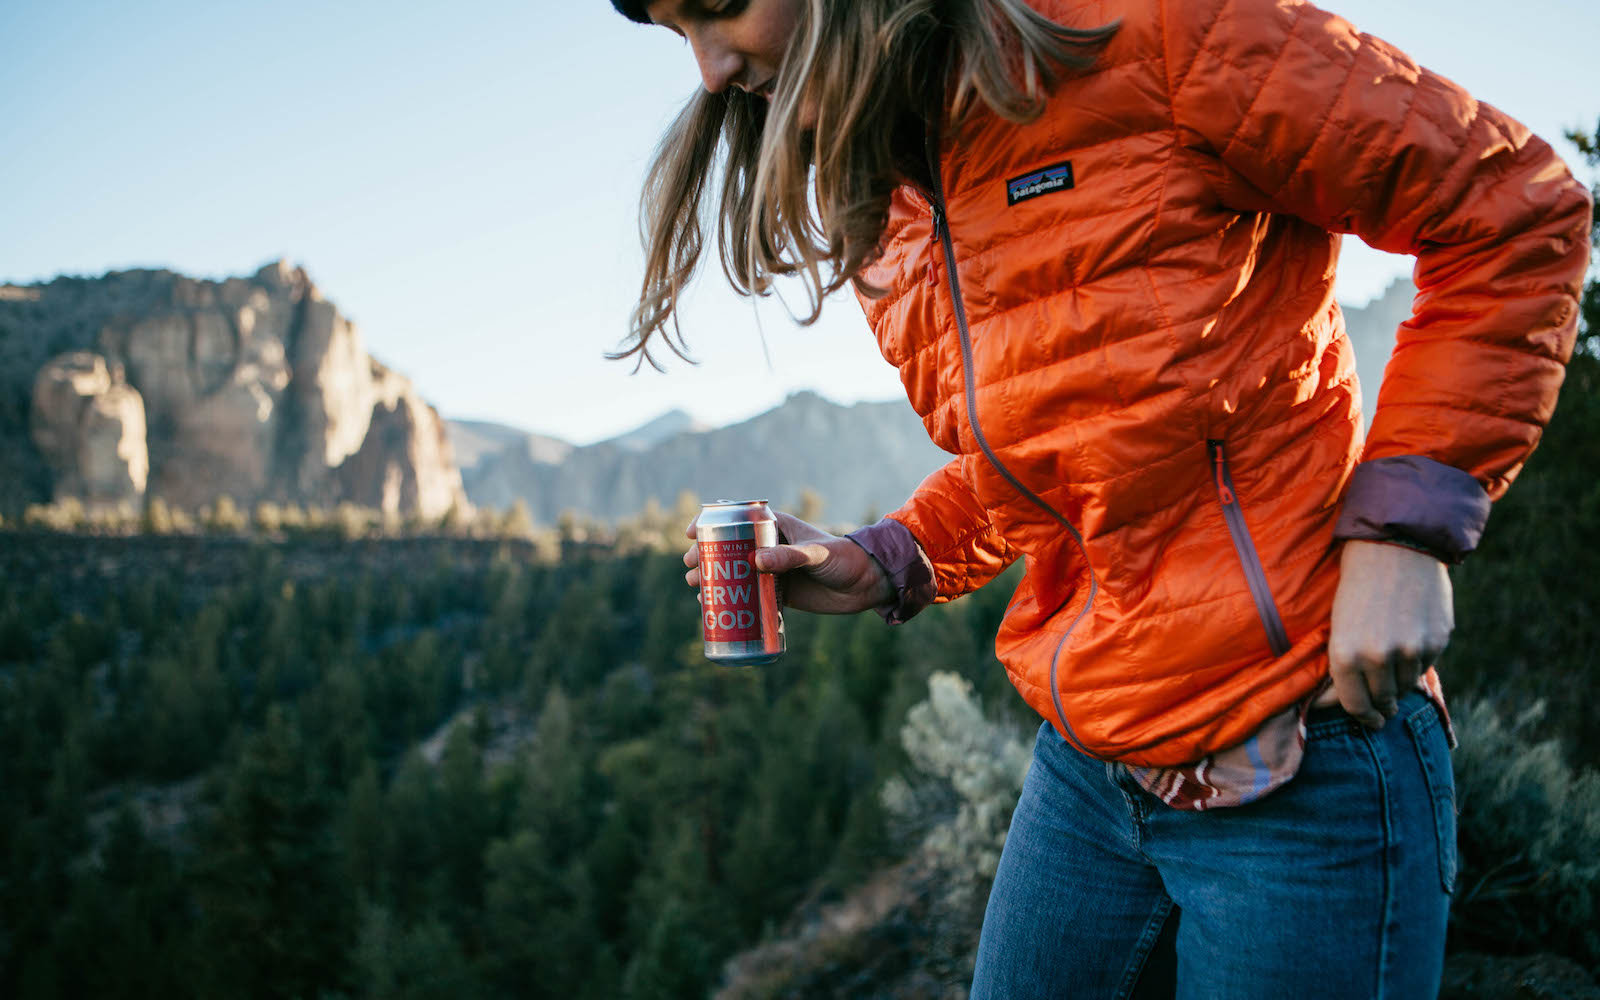 Woman climbs mountain holding wine in a can